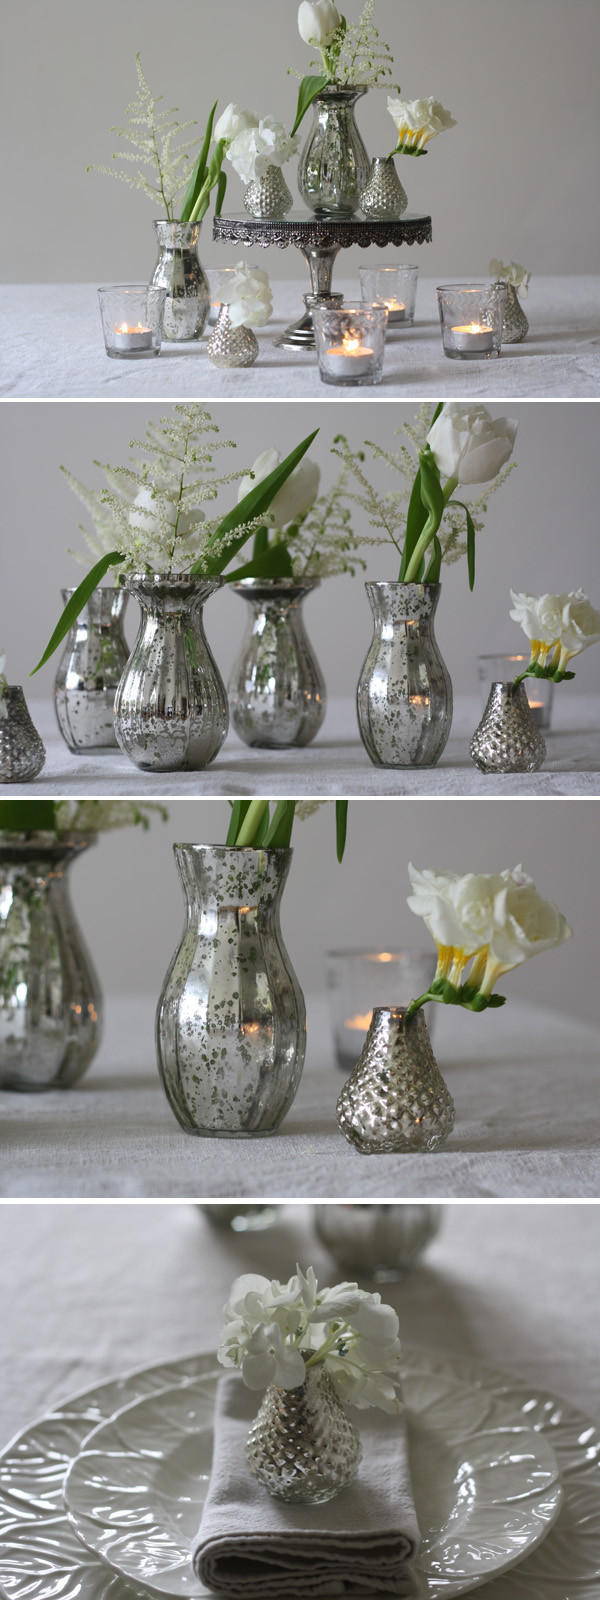 silver and glass vase of chair table vase decorations flower small square cylinder crystal with chair exquisite table vase decorations 29 mercury silver glass vases small bud for wedding centrepieces table